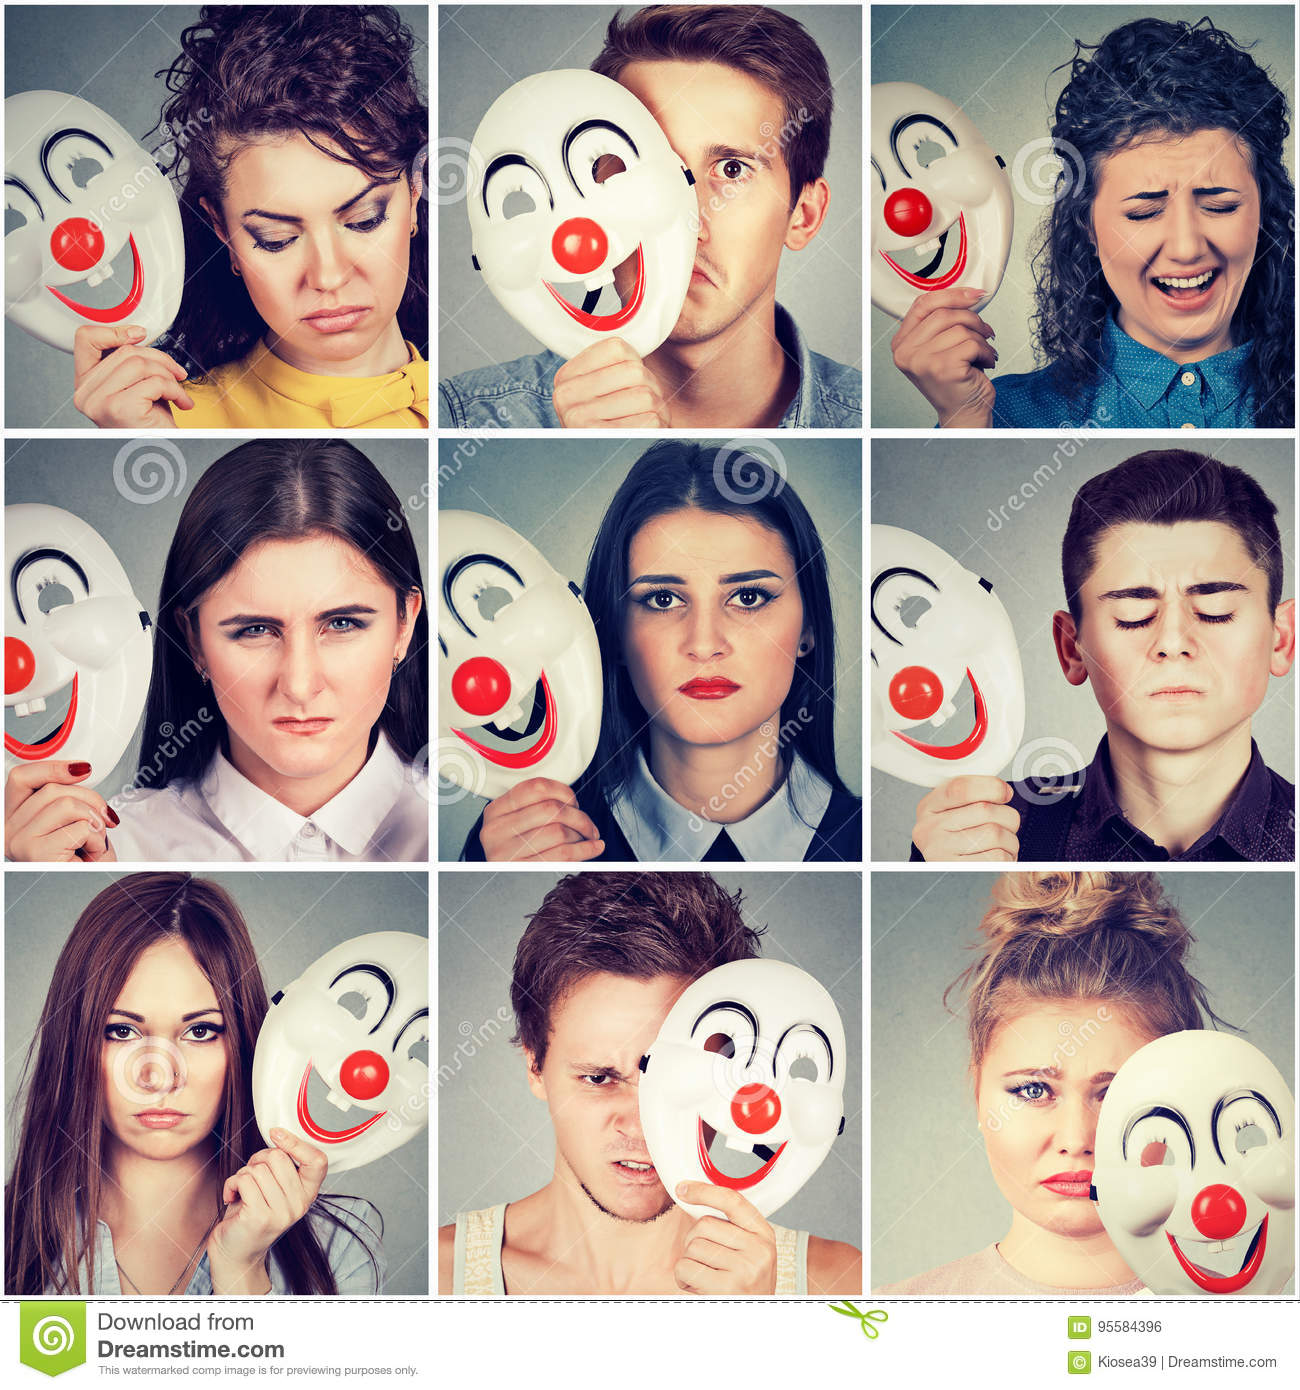 Group of sad angry people hiding real emotions behind clown mask